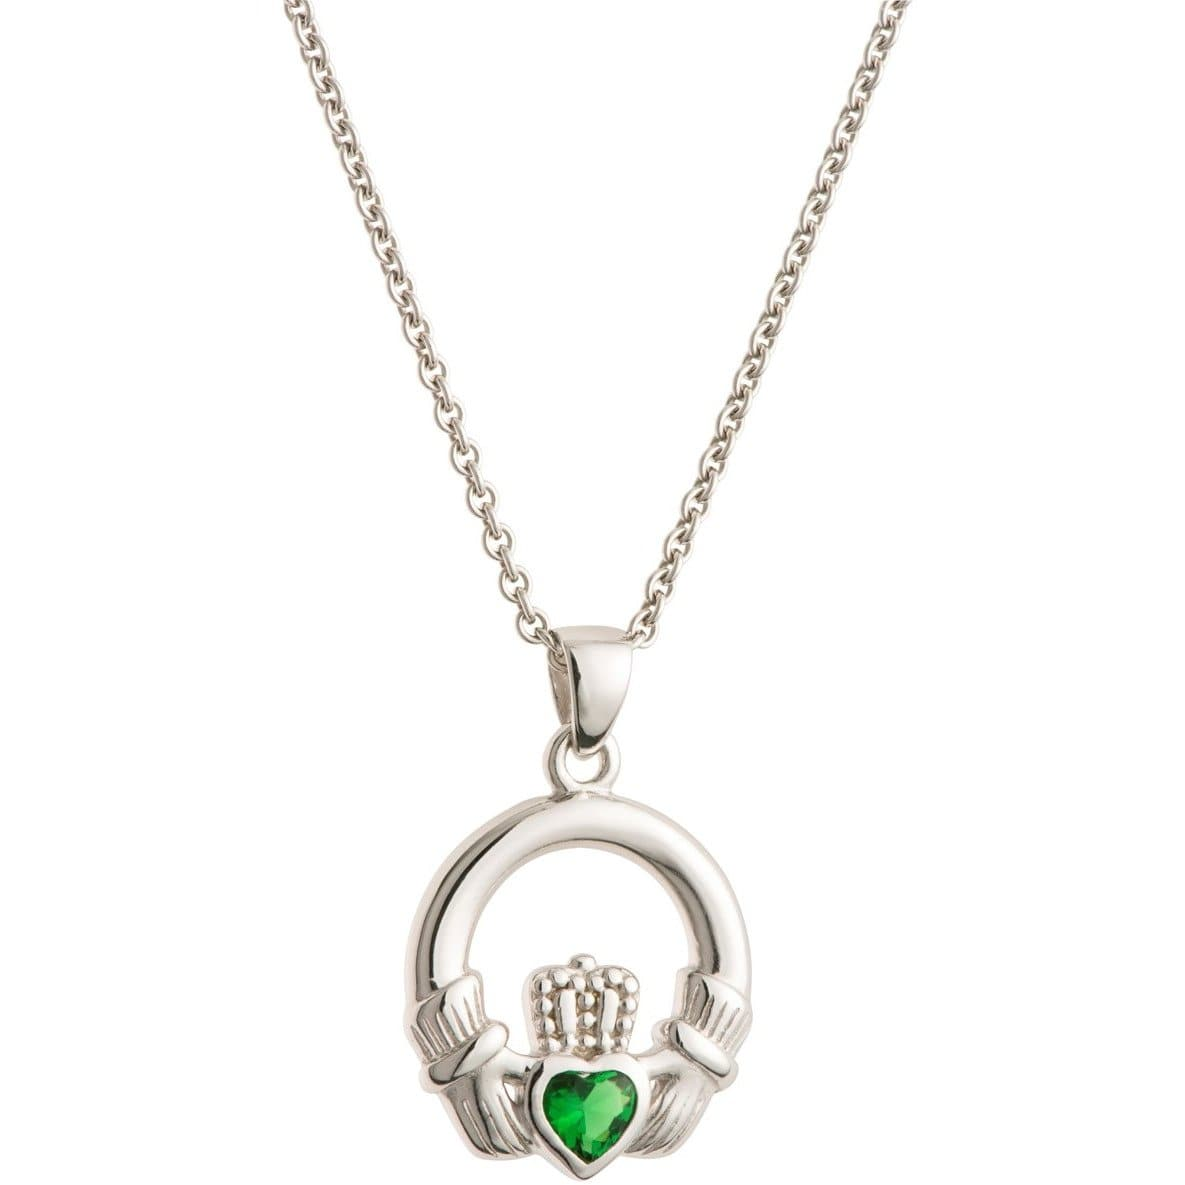 Green Crystal Claddagh Sterling Silver Pendant G7700 - Galway Irish Crystal